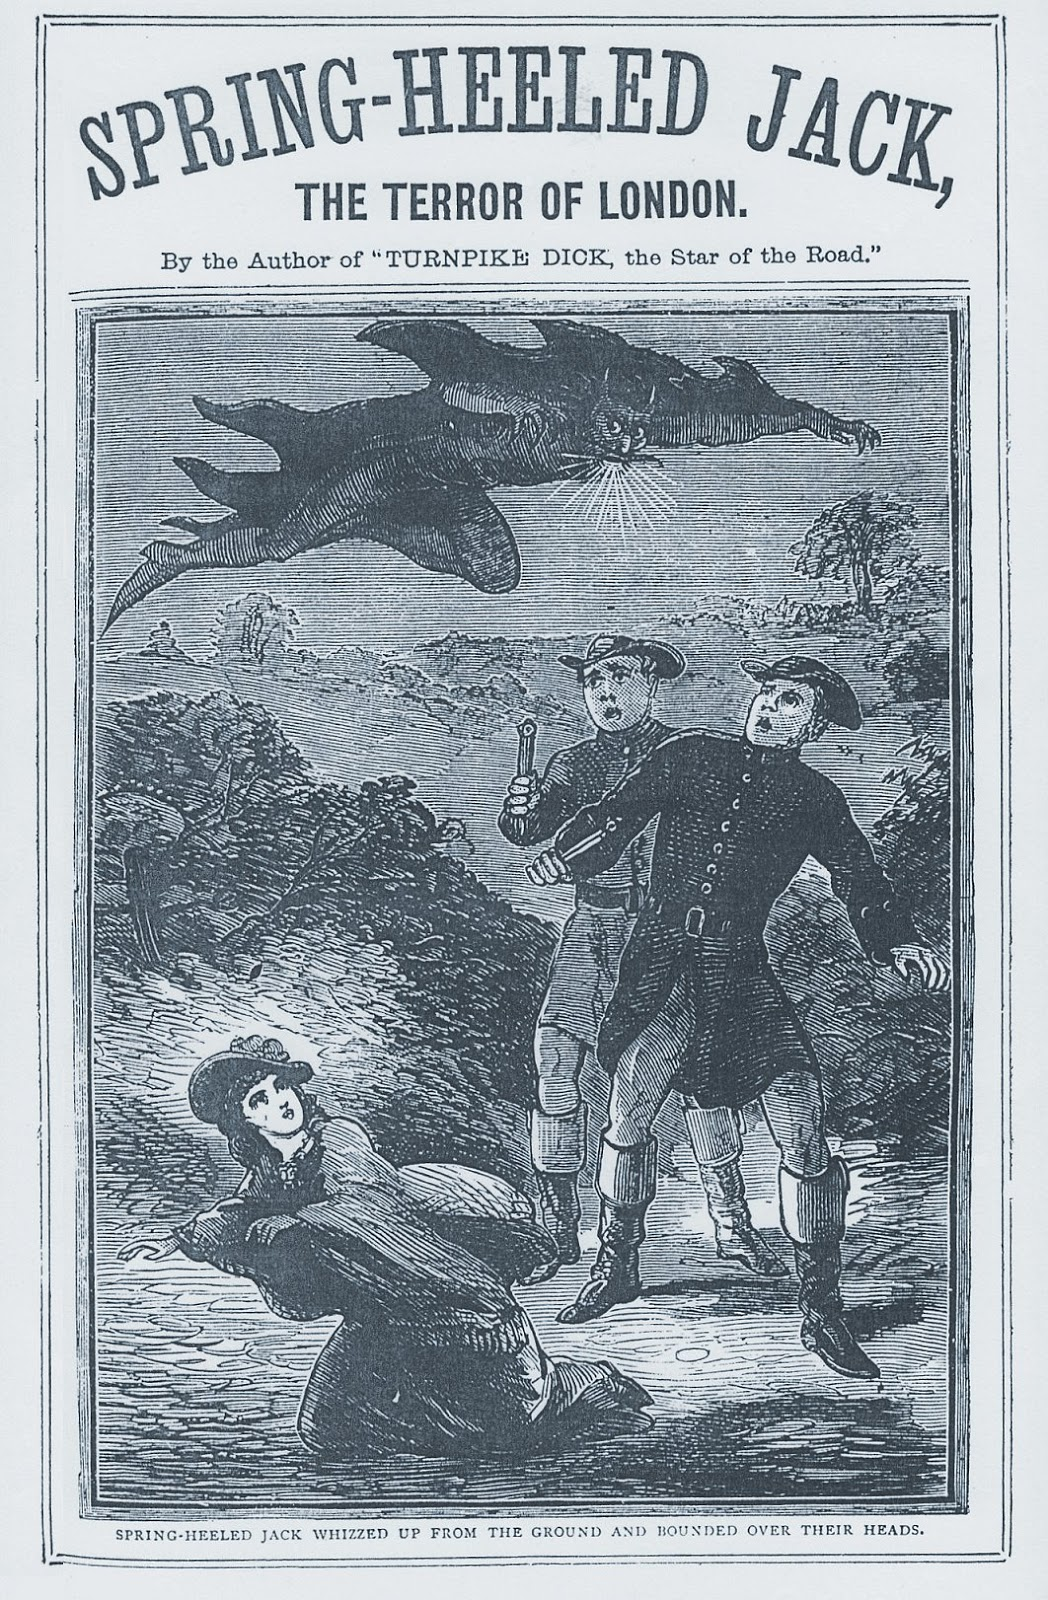 Spring-heeled Jack, Mystery Assailant!